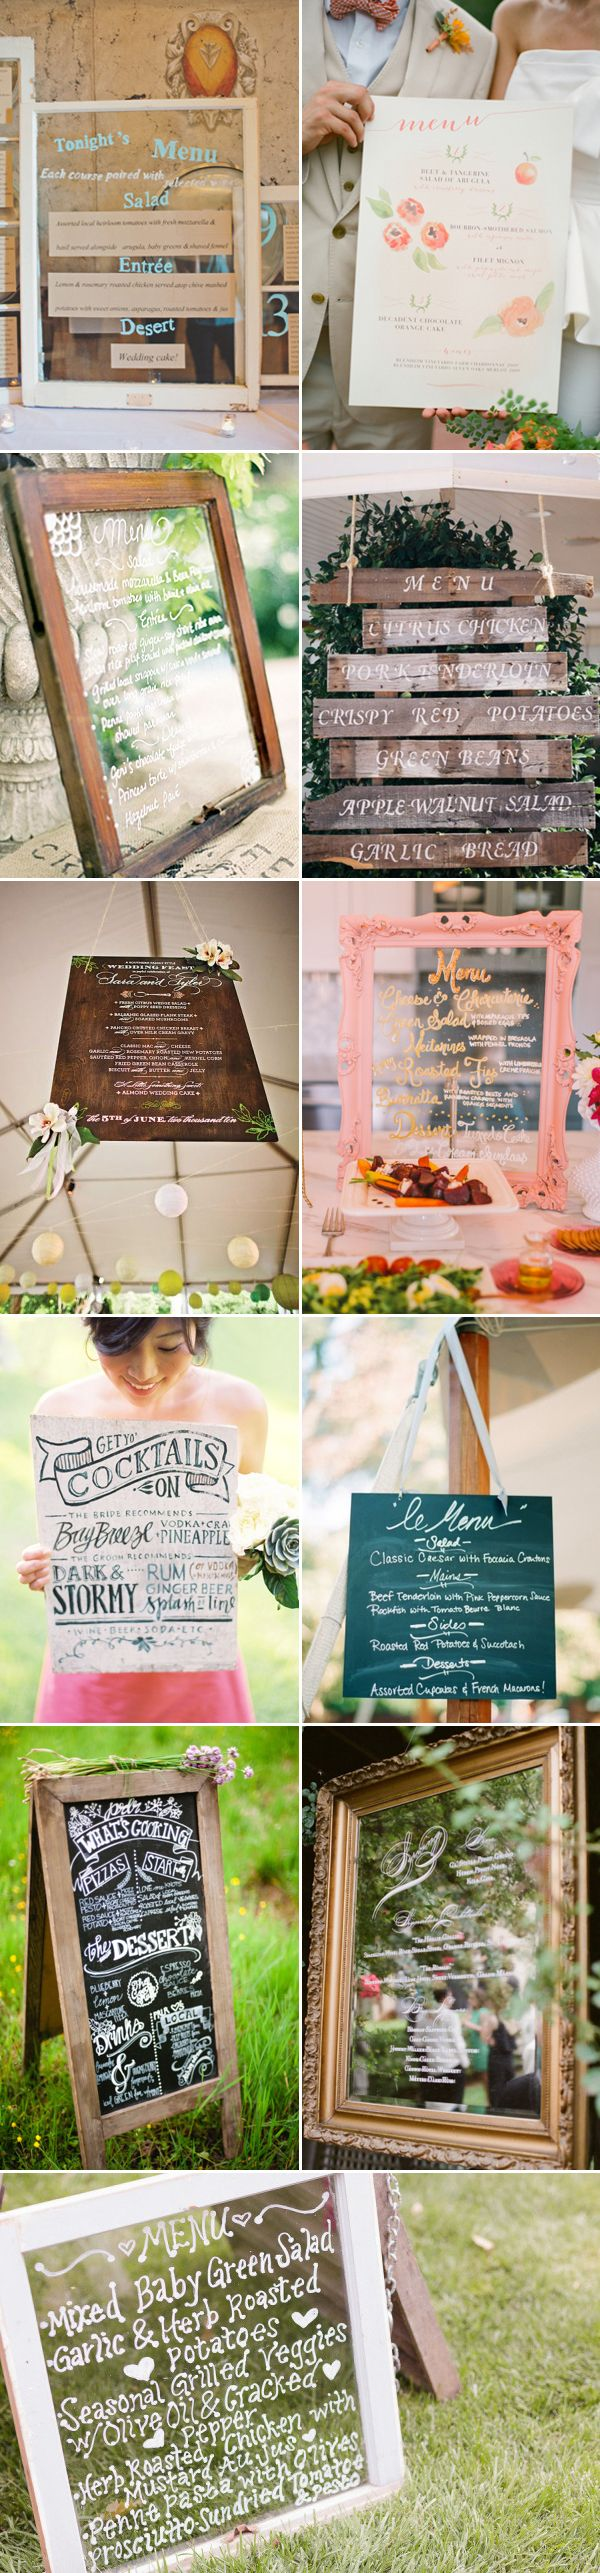 30 Creative Wedding Menu Ideas For Every Type of Wedding #weddingmenuideas